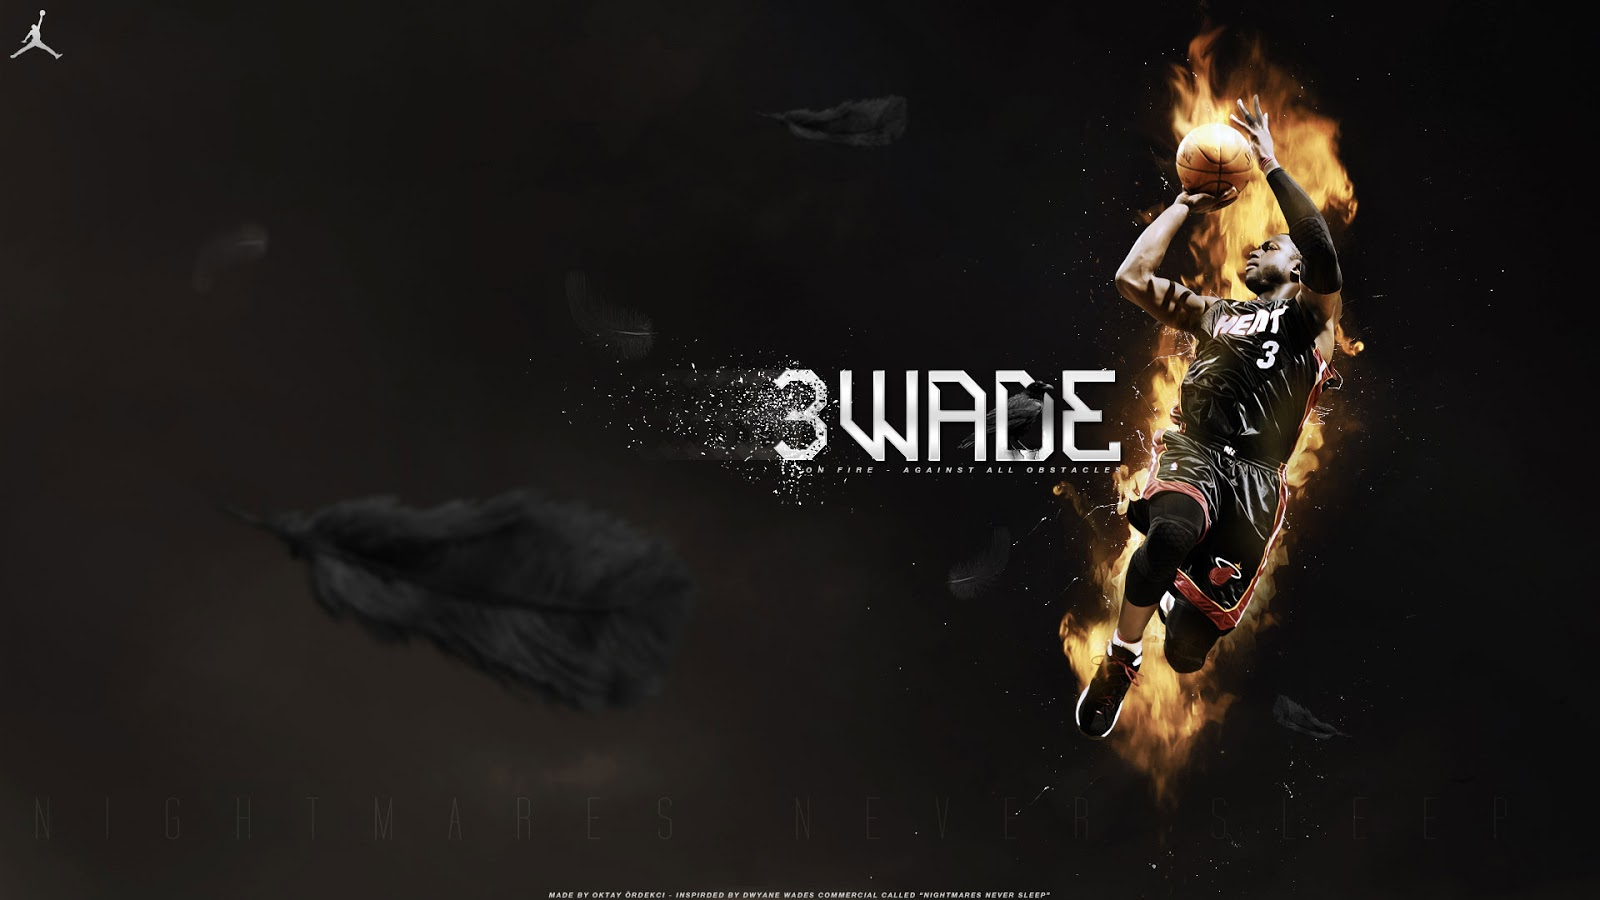 Popular   Wallpaper Horse Nightmare - Miami+Heat+Full+HD+Wallpapers+16  You Should Have_76755.jpg